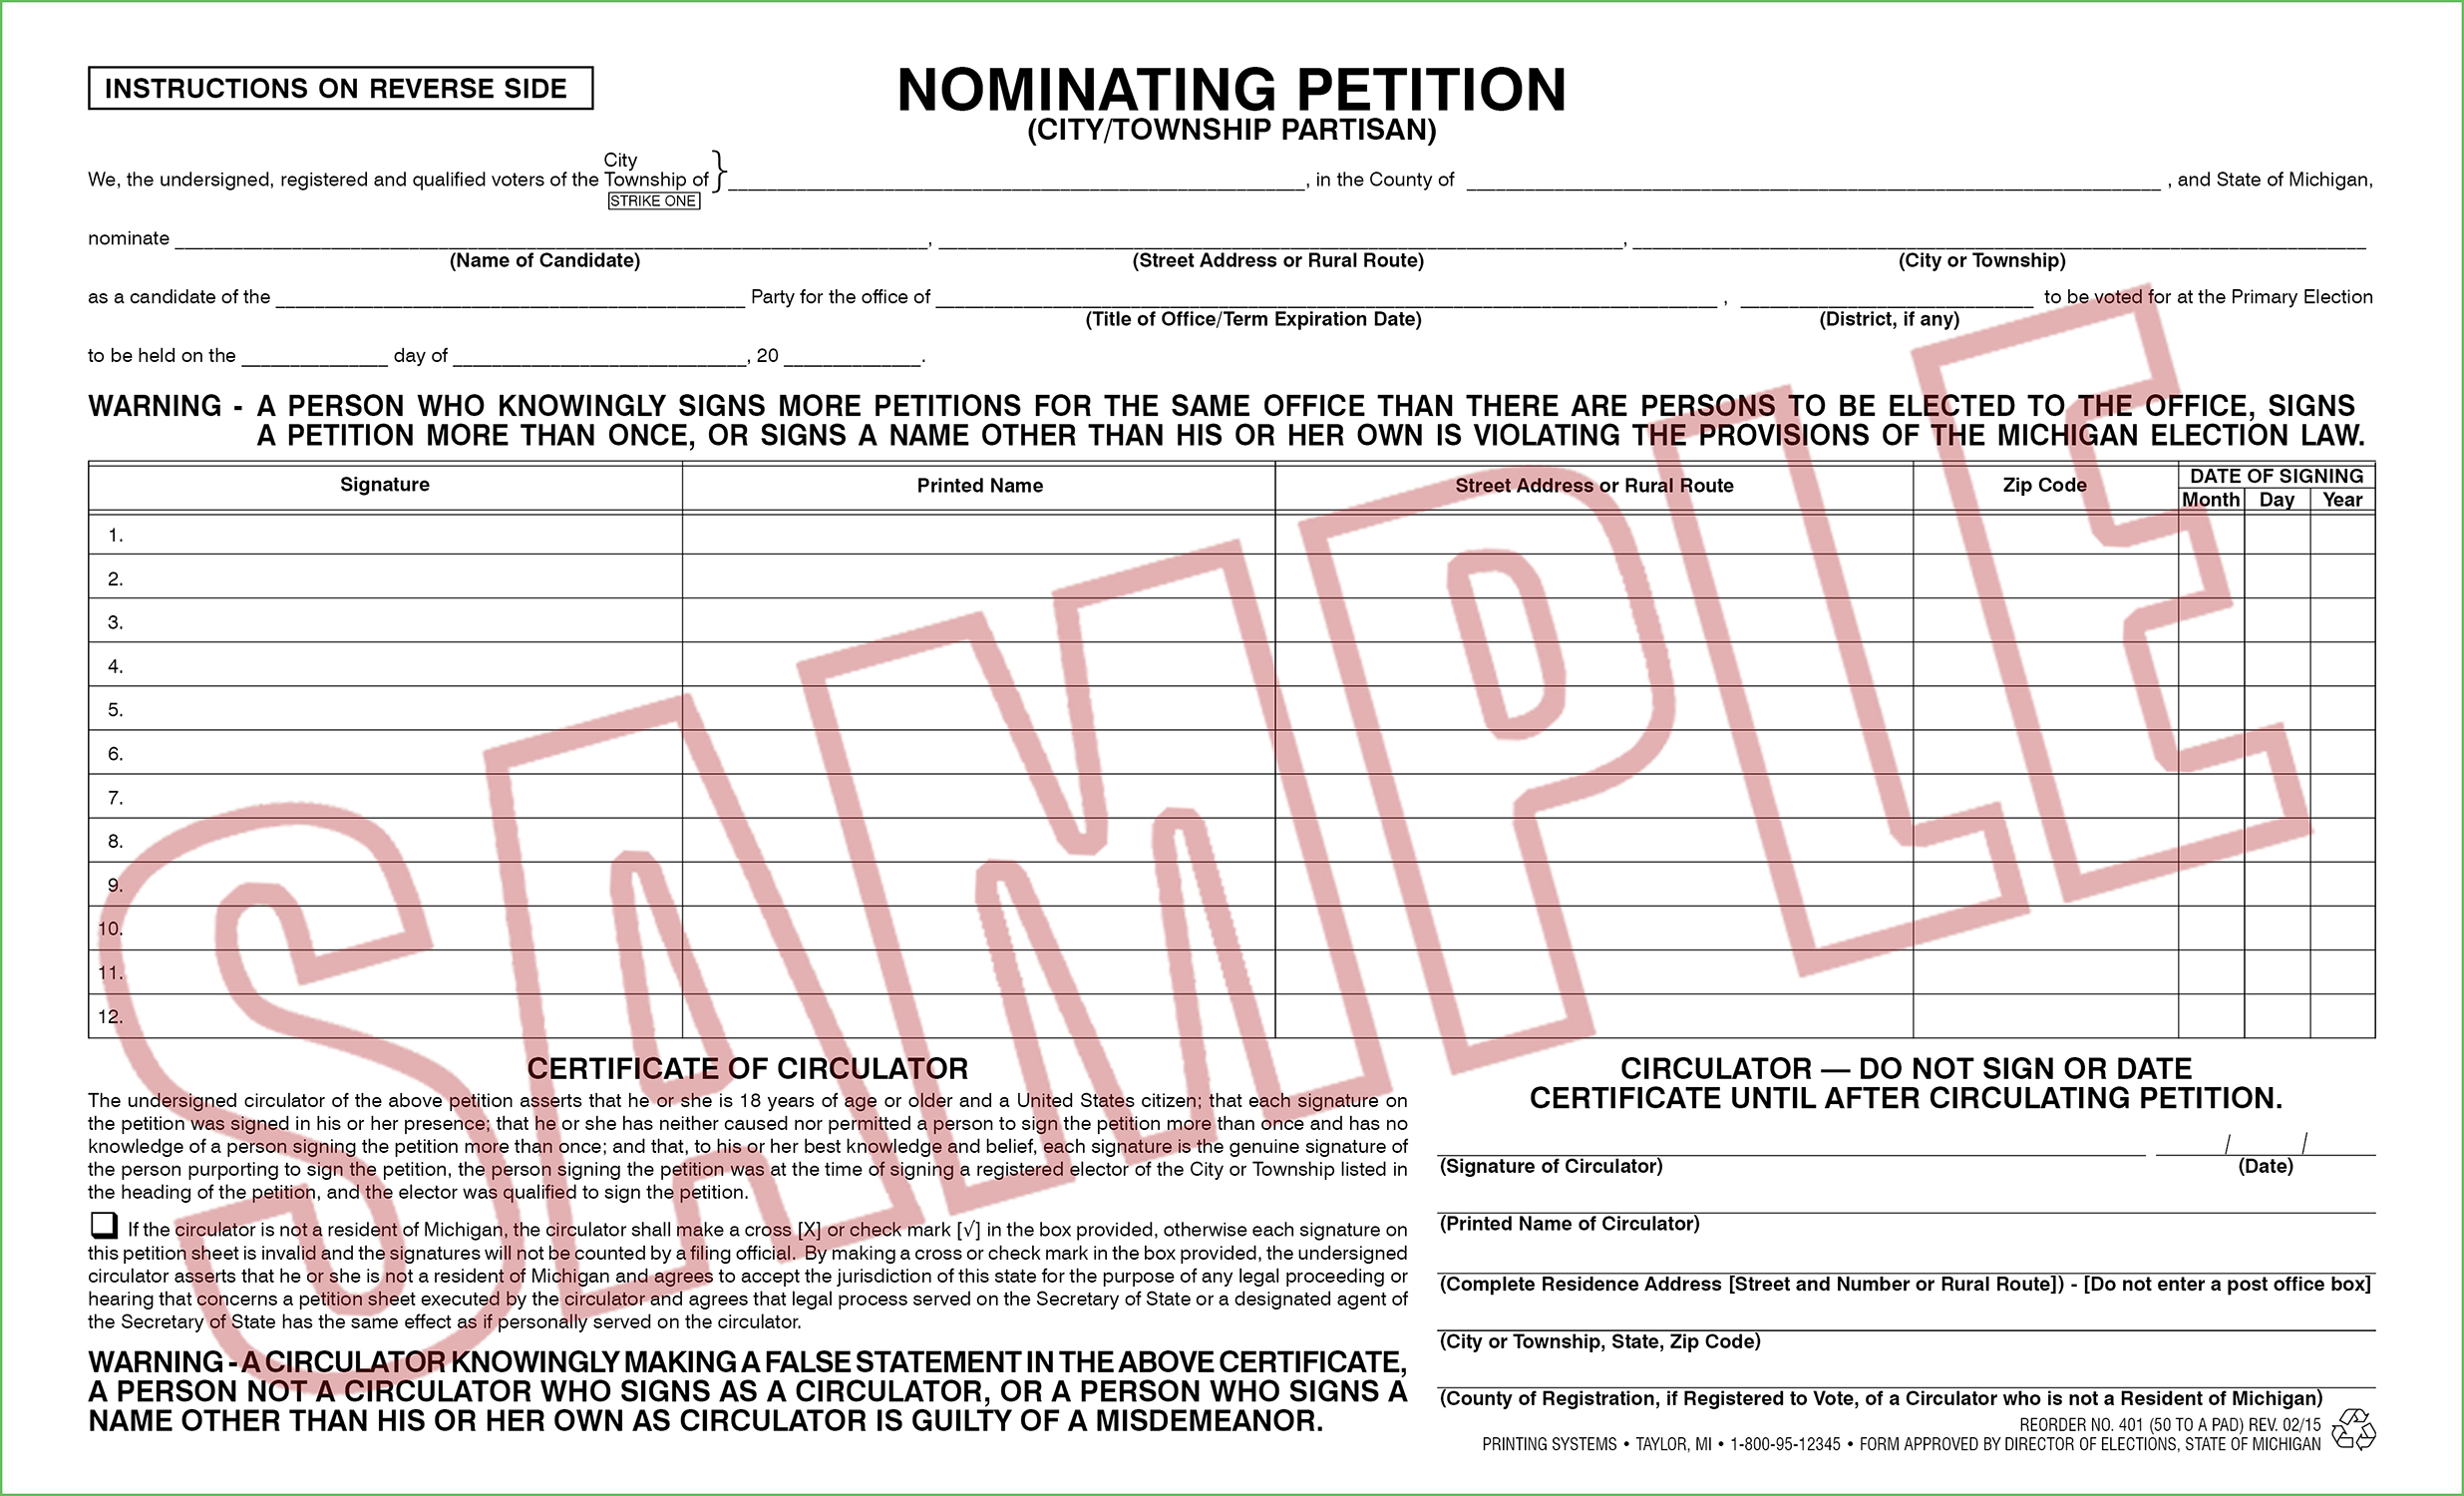 401 Nominating Petition (Ci/Twp) Partisan (50 per pad)